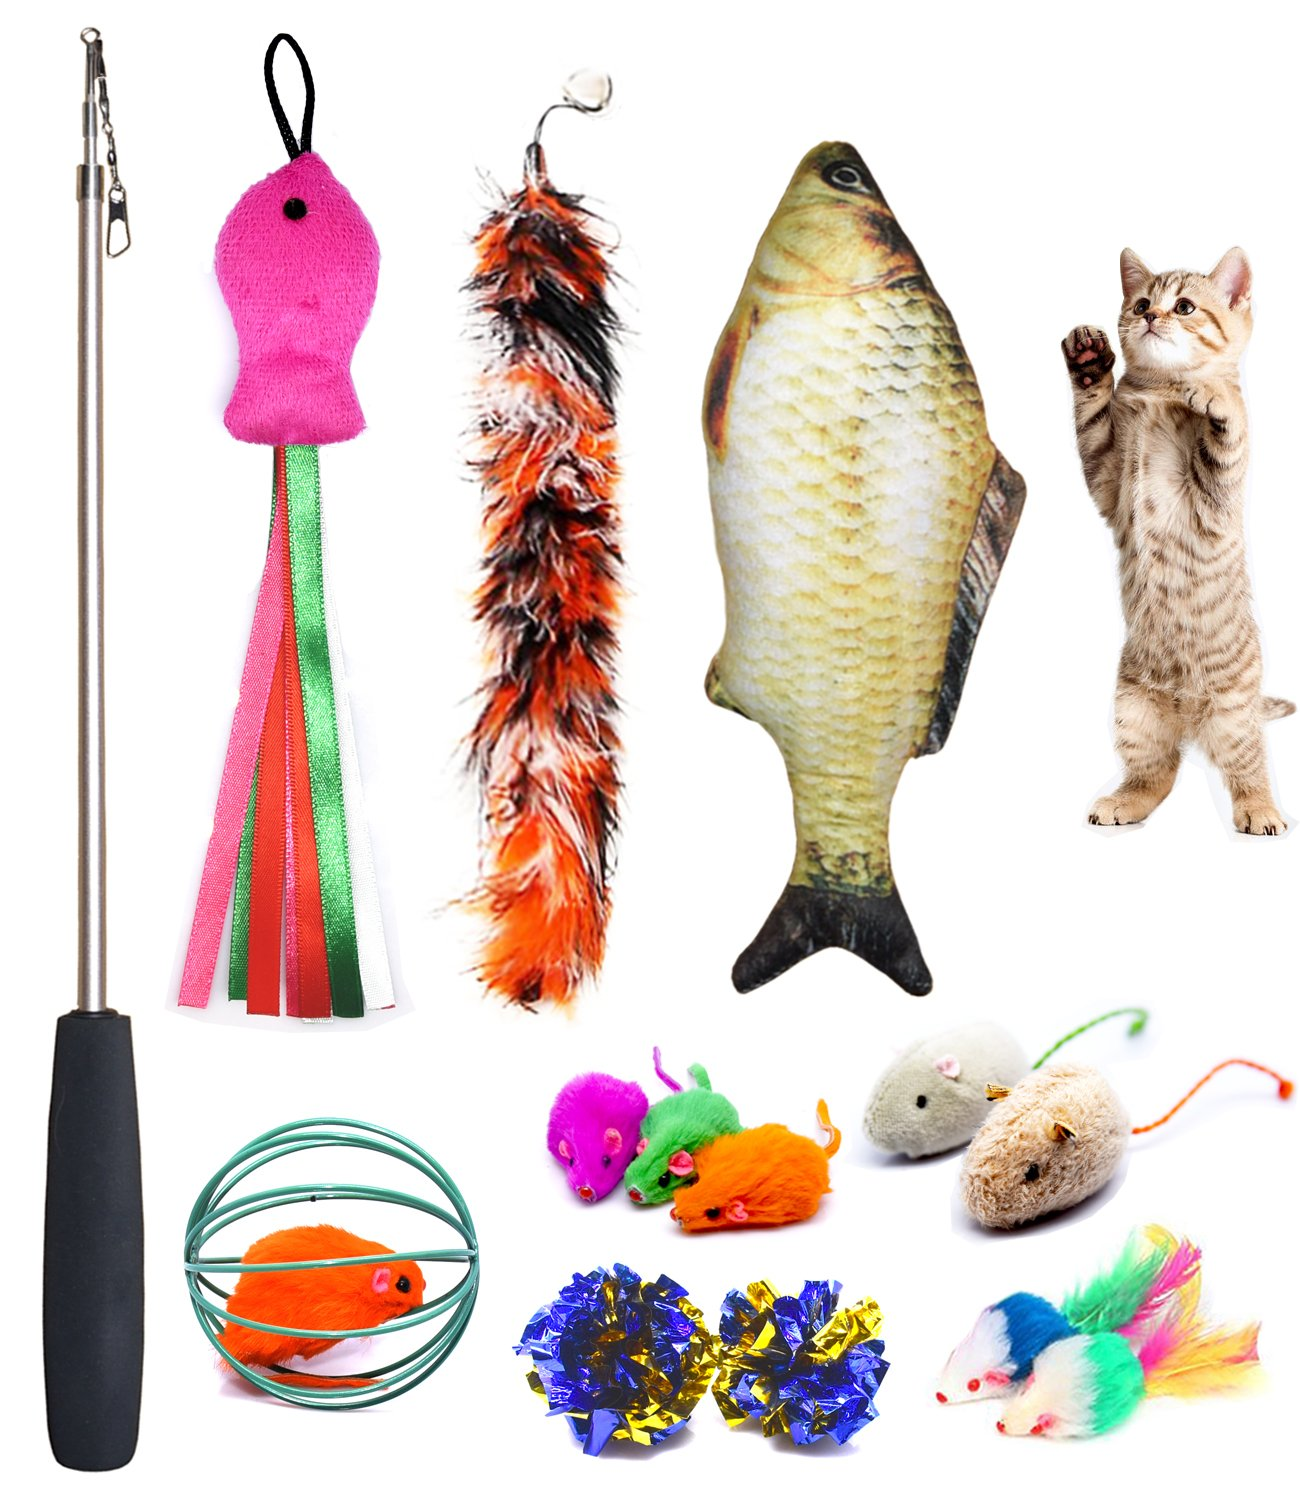 Cat Toys Set, Cat Retractable Teaser Wand, Catnip Fish, Interactive Cat Feather Toy, Mylar Crincle Balls, Two Cotton Mice, Two Fluffy Mouse, Pack of 11